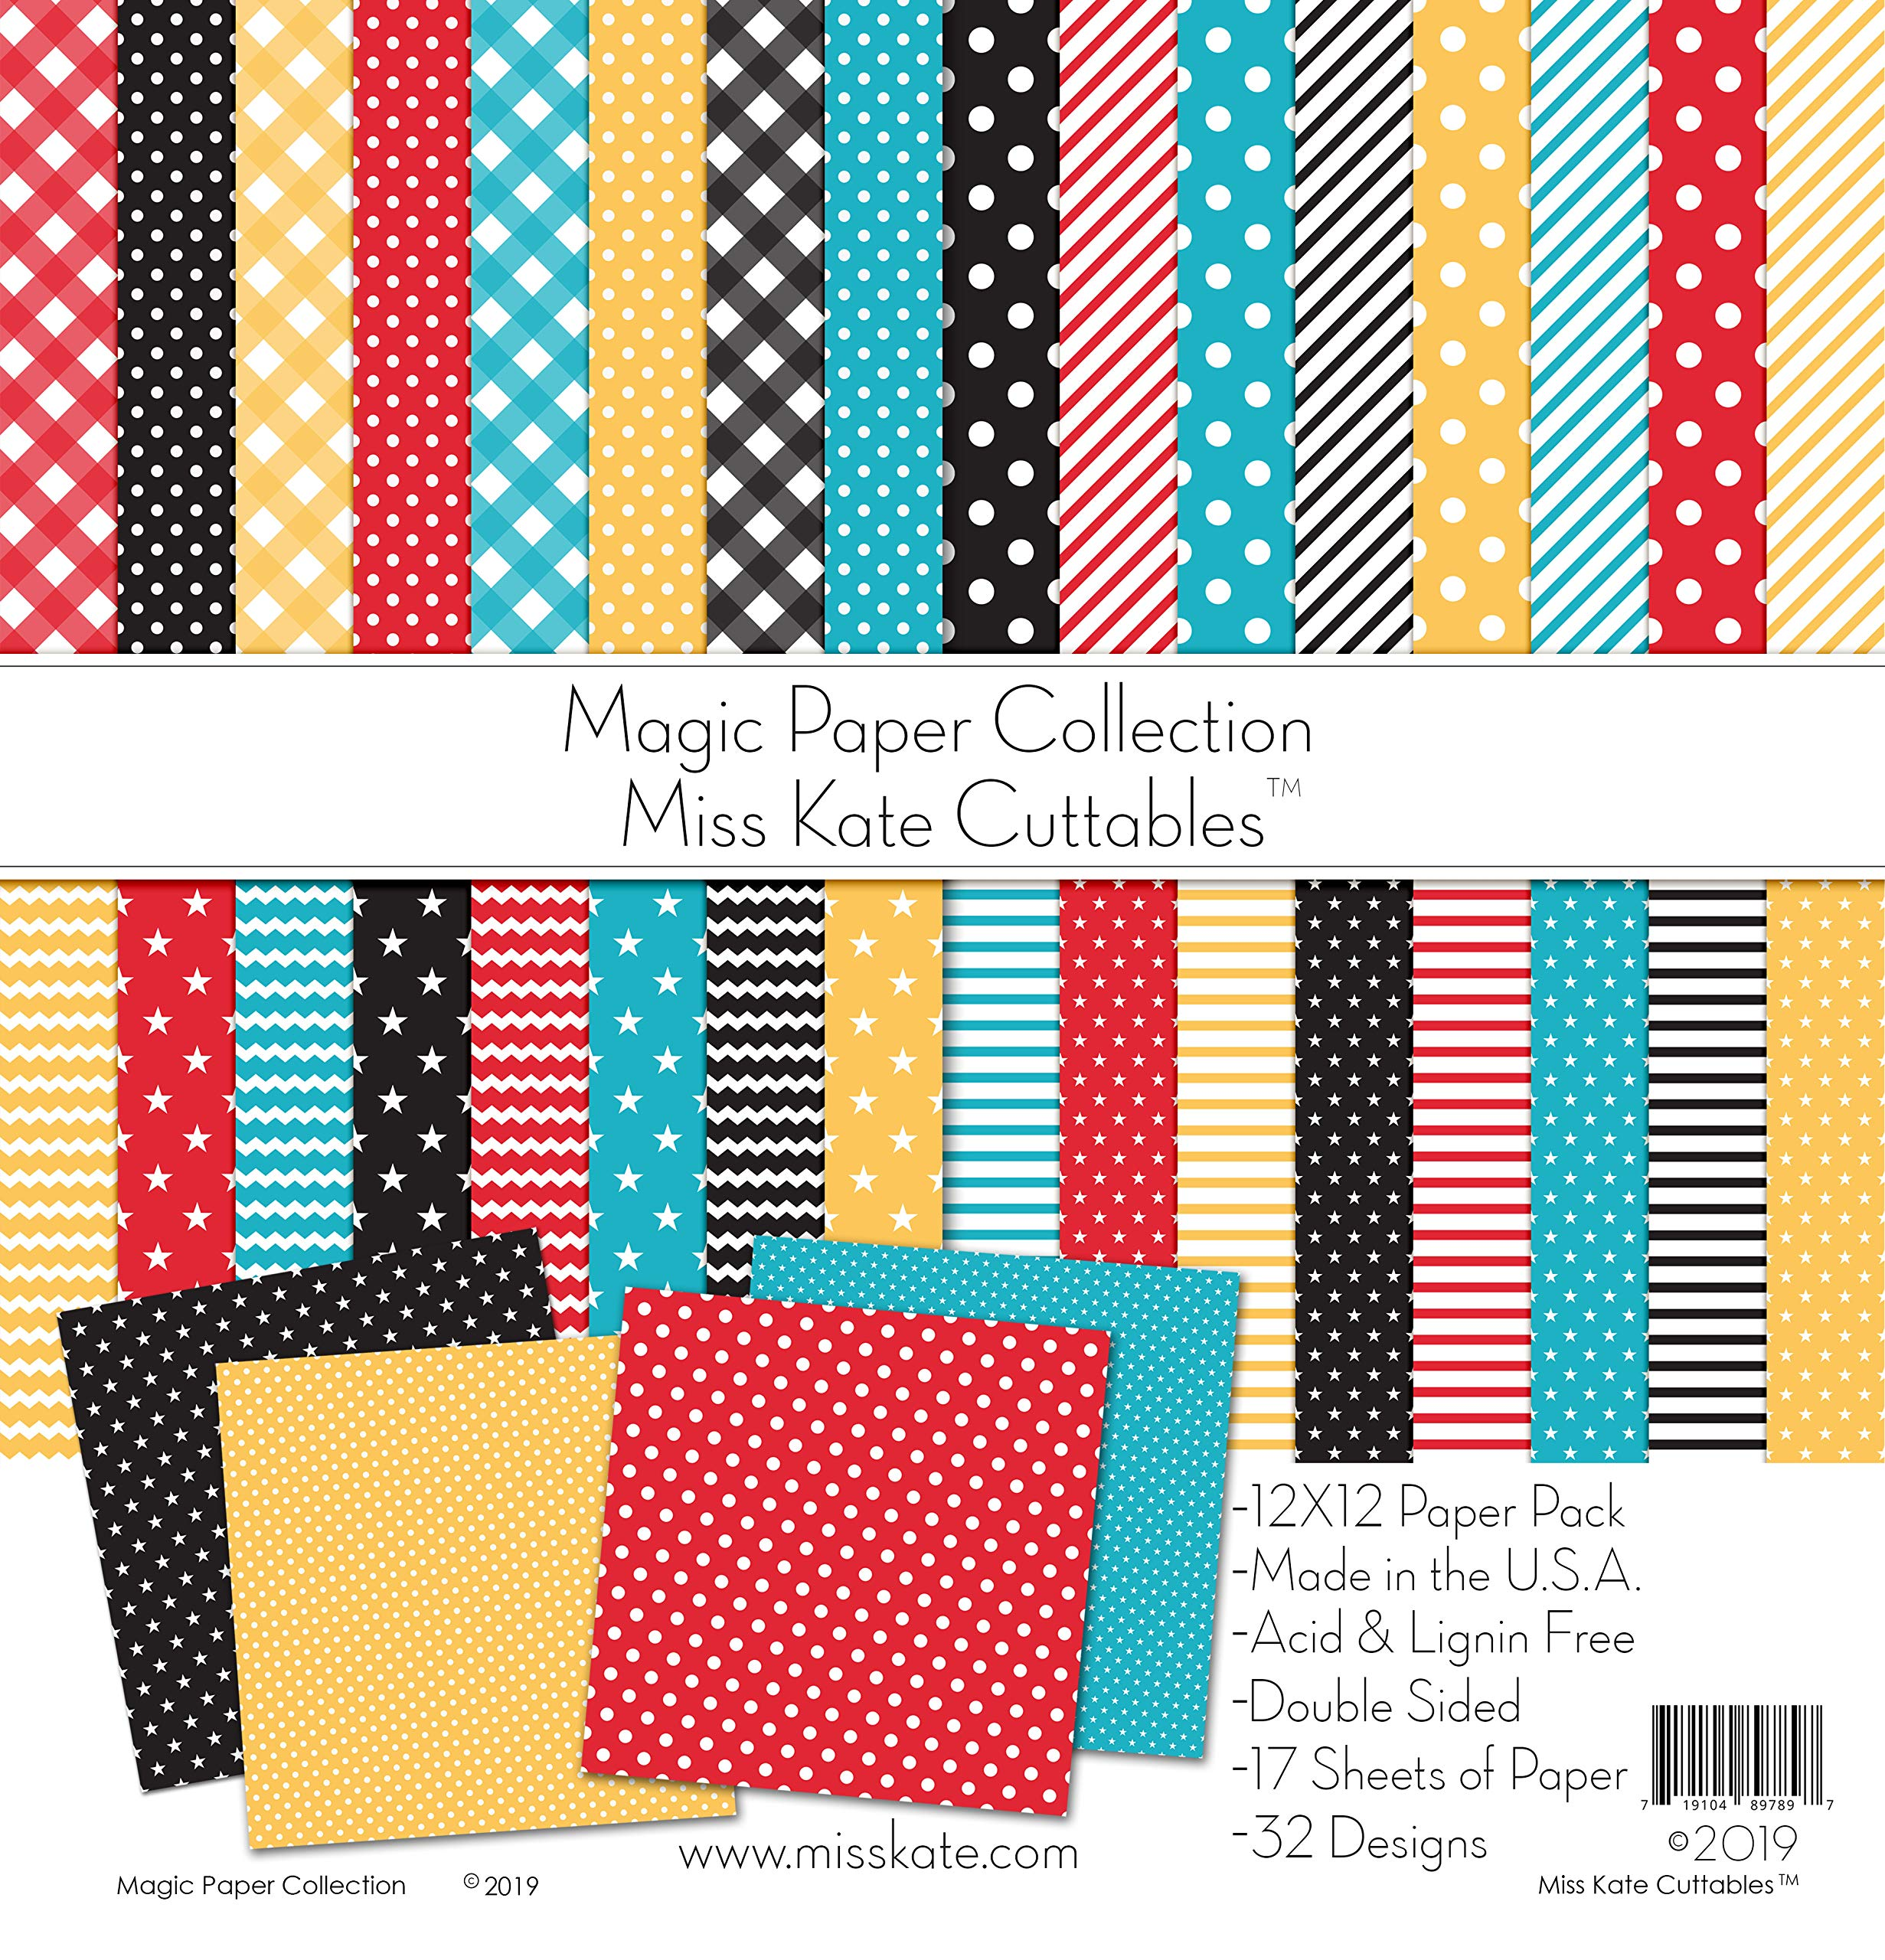 Pattern Paper Pack - Magic Basics - for Disney - 17 Double-Sided 12''x12'' Collection Includes 34 Patterns - Scrapbooking Card Making Crafting - by Miss Kate Cuttables